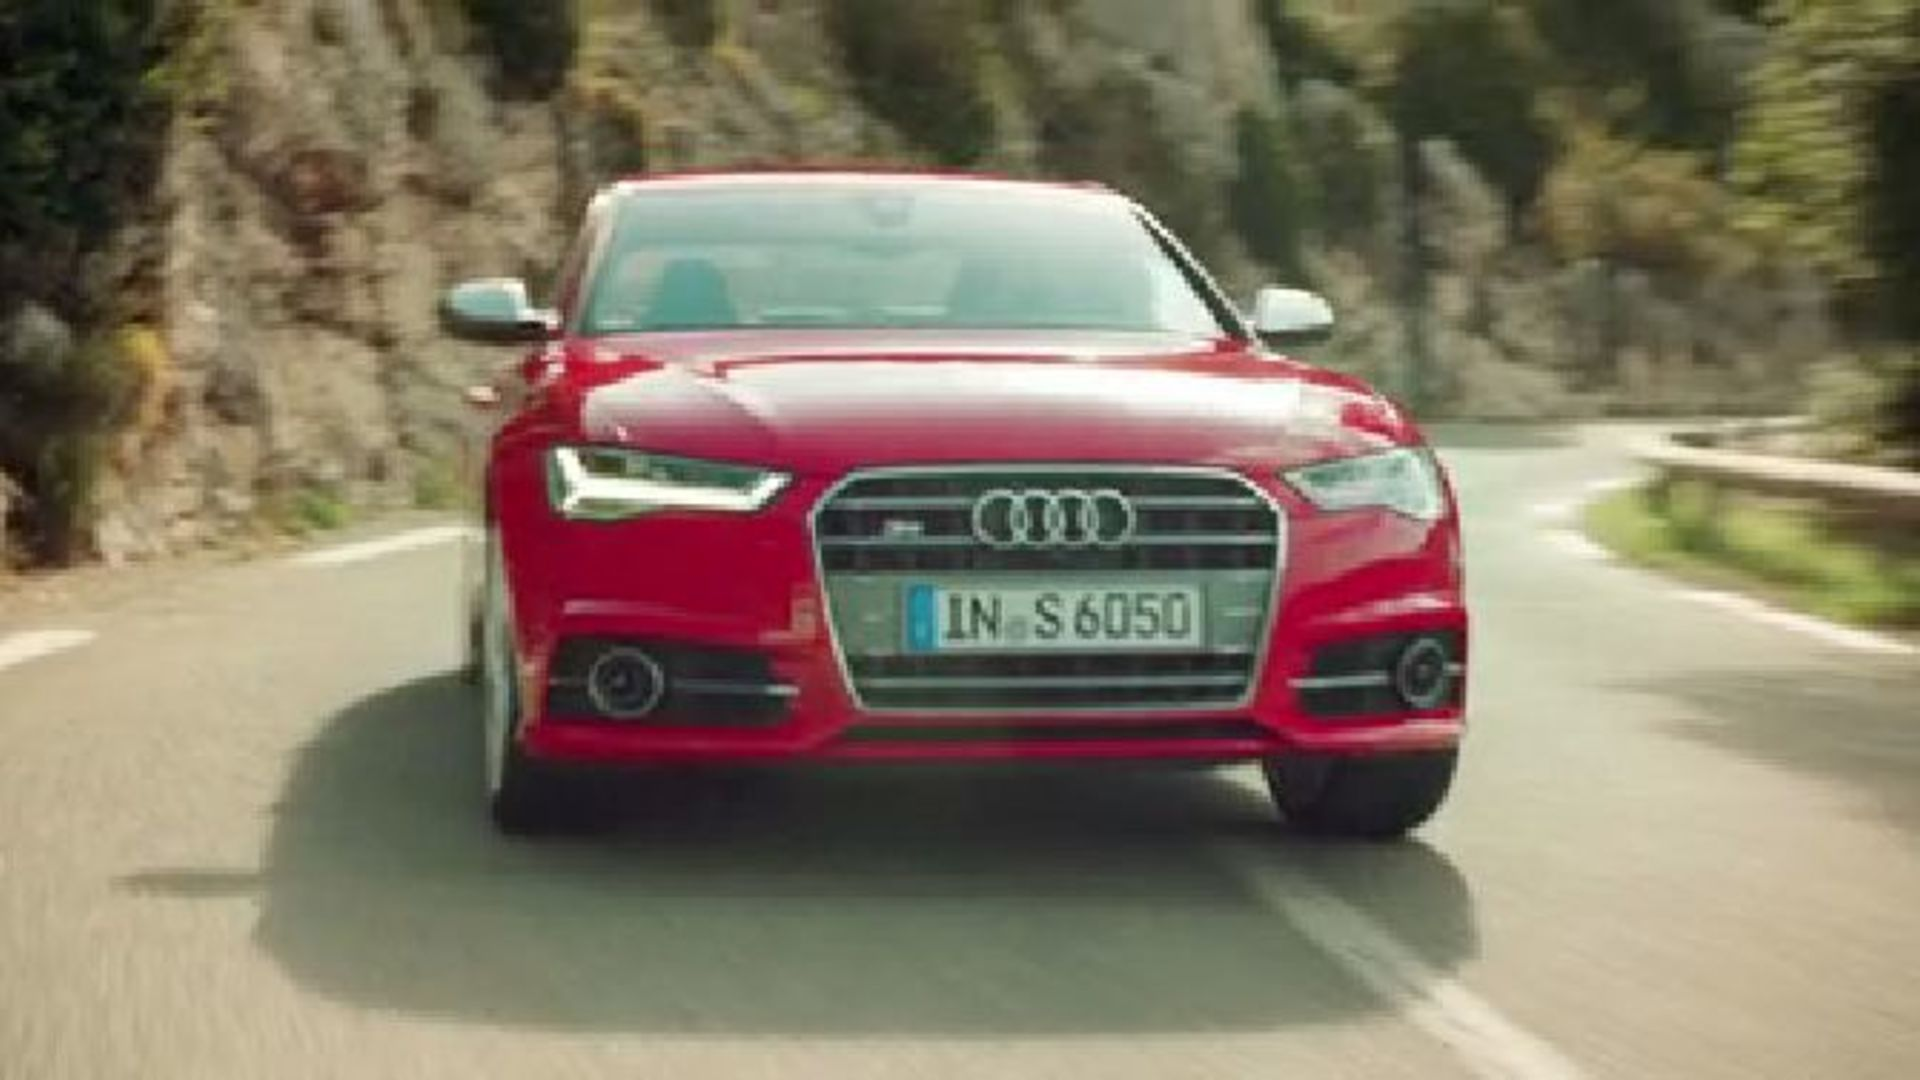 The new Audi S6